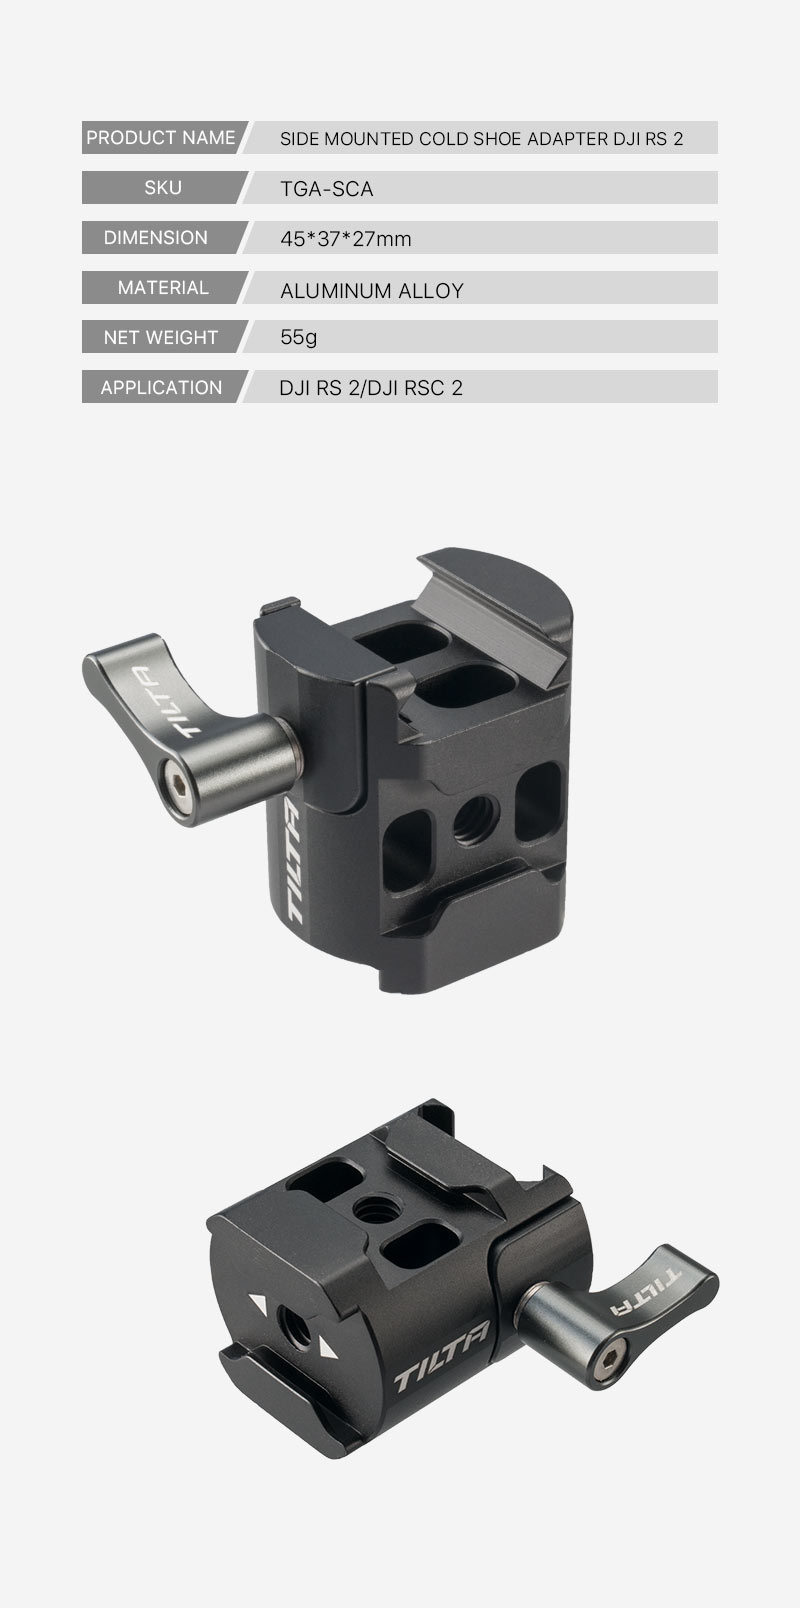 Side Mounted Cold Shoe Adapter